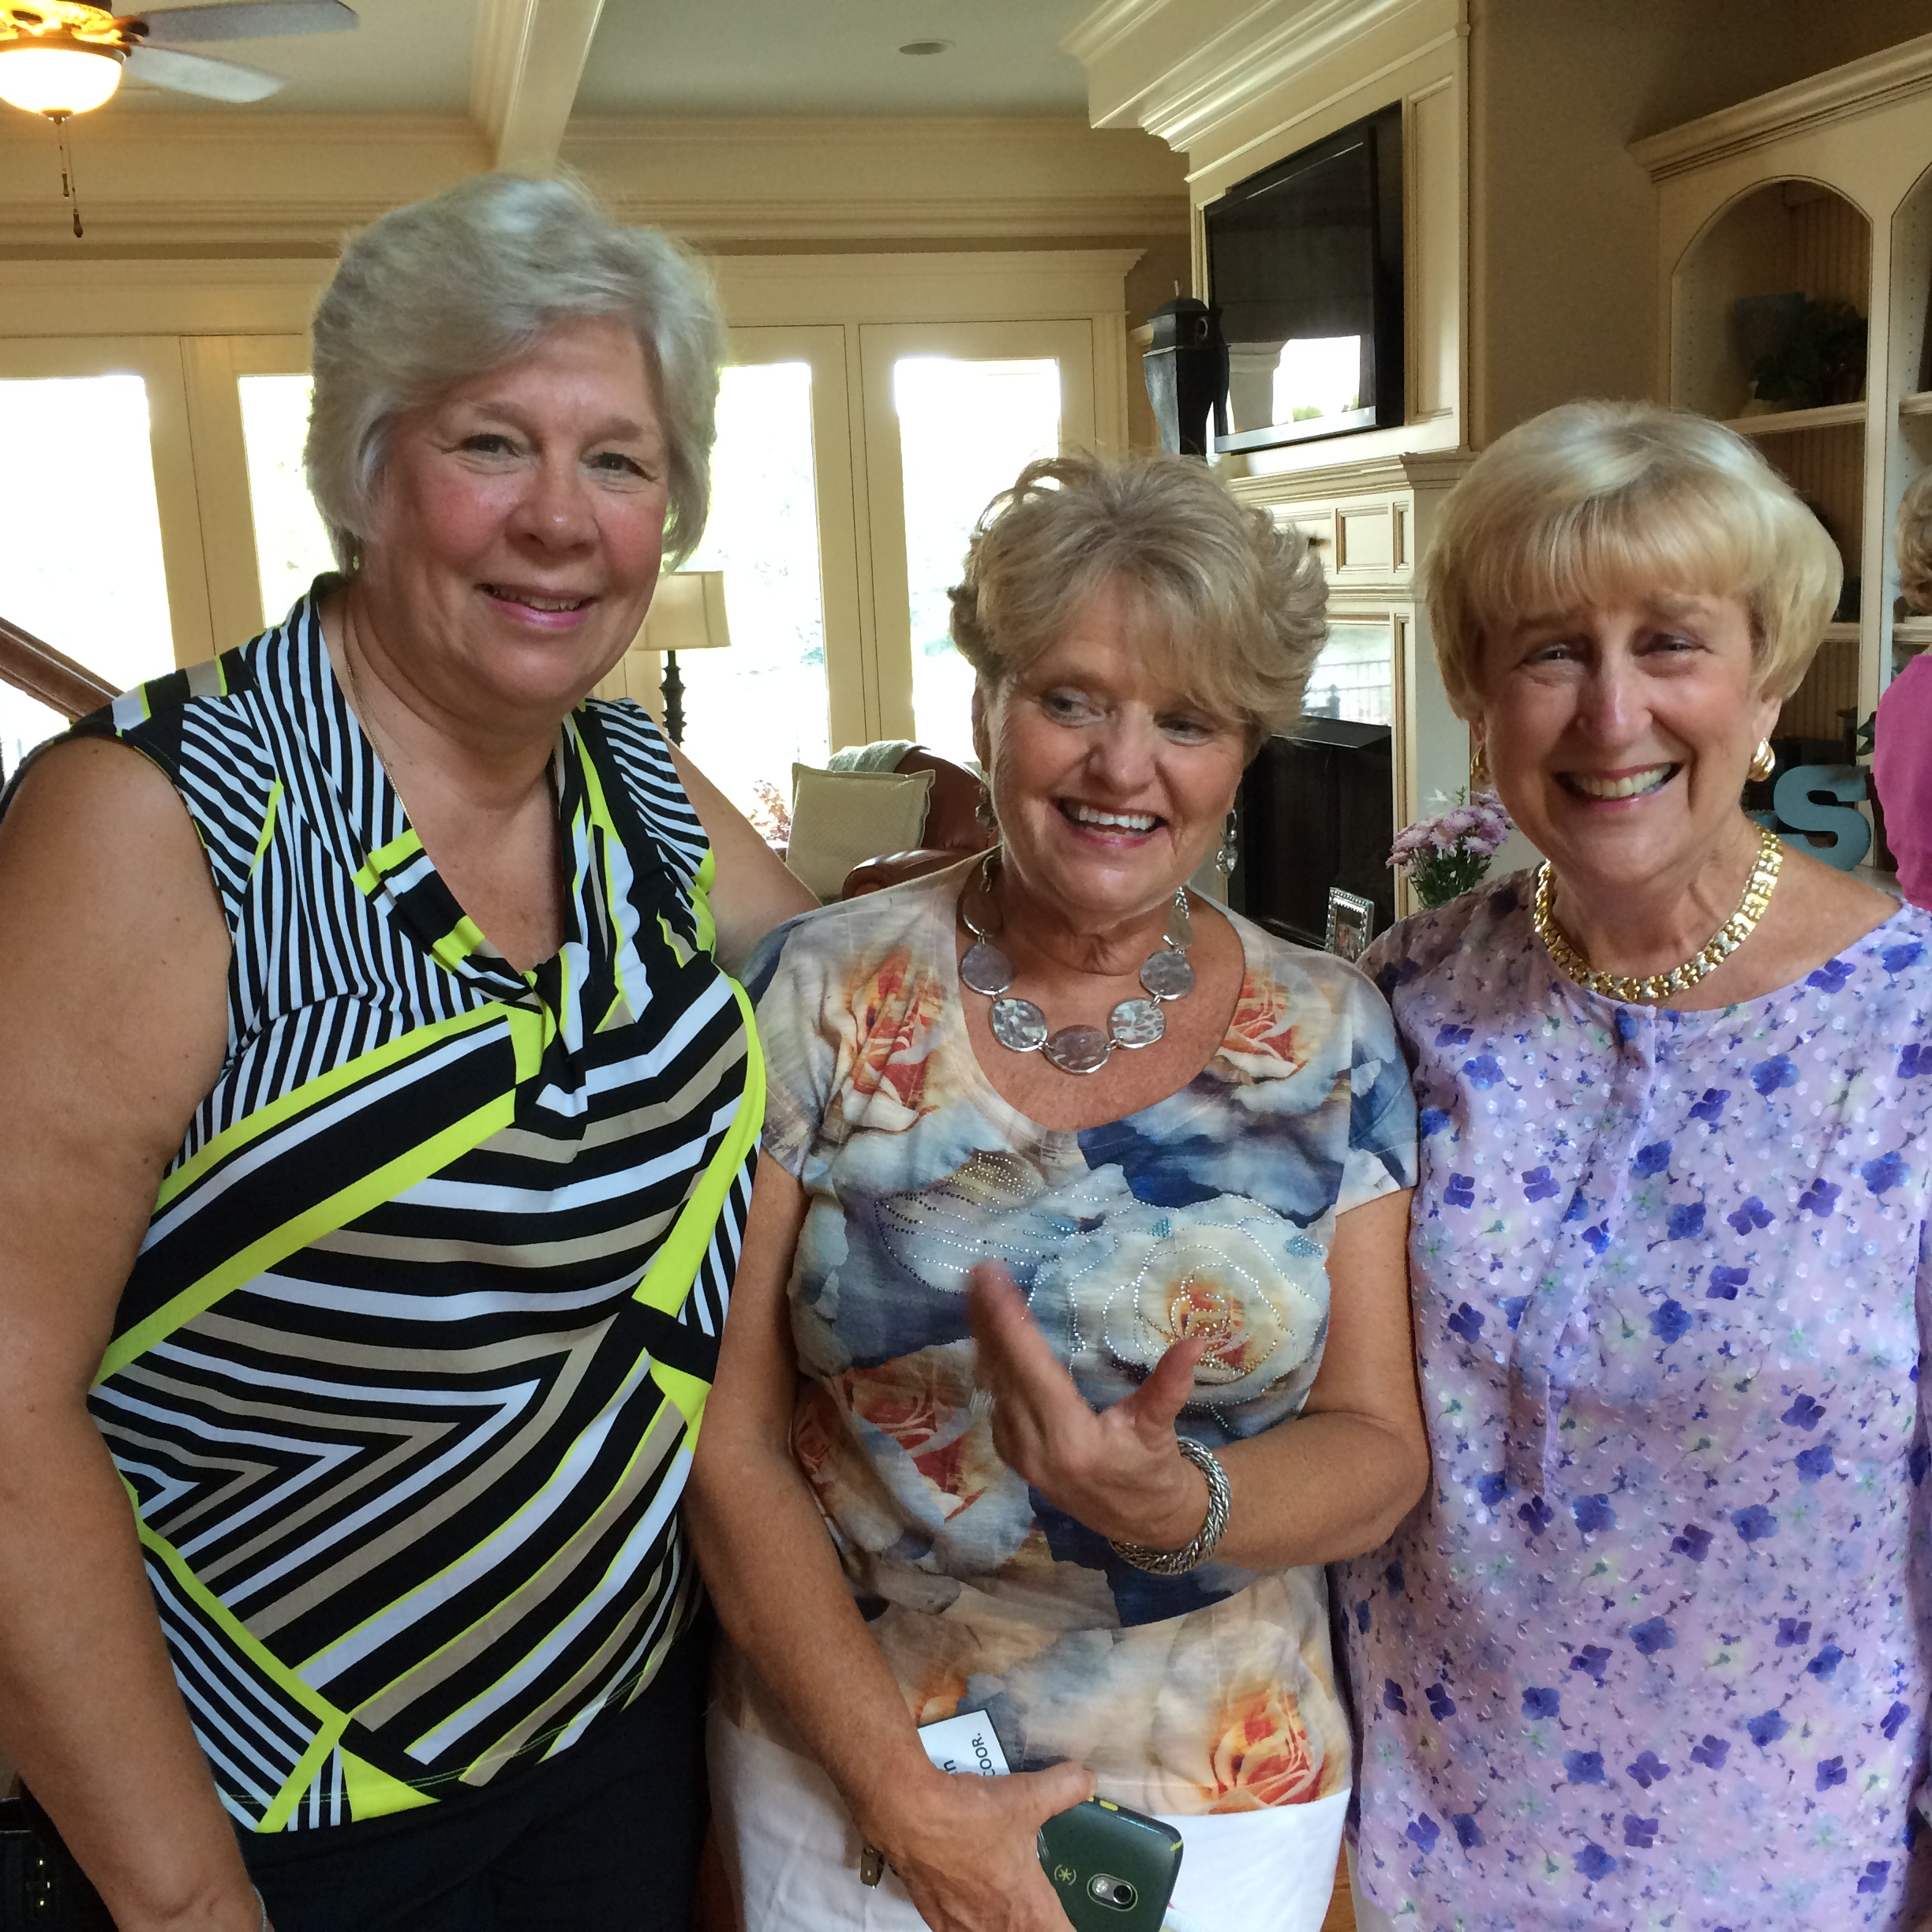 Ice Cream Social at Maggie Smith's Home was grand success. Thank you Maggie.